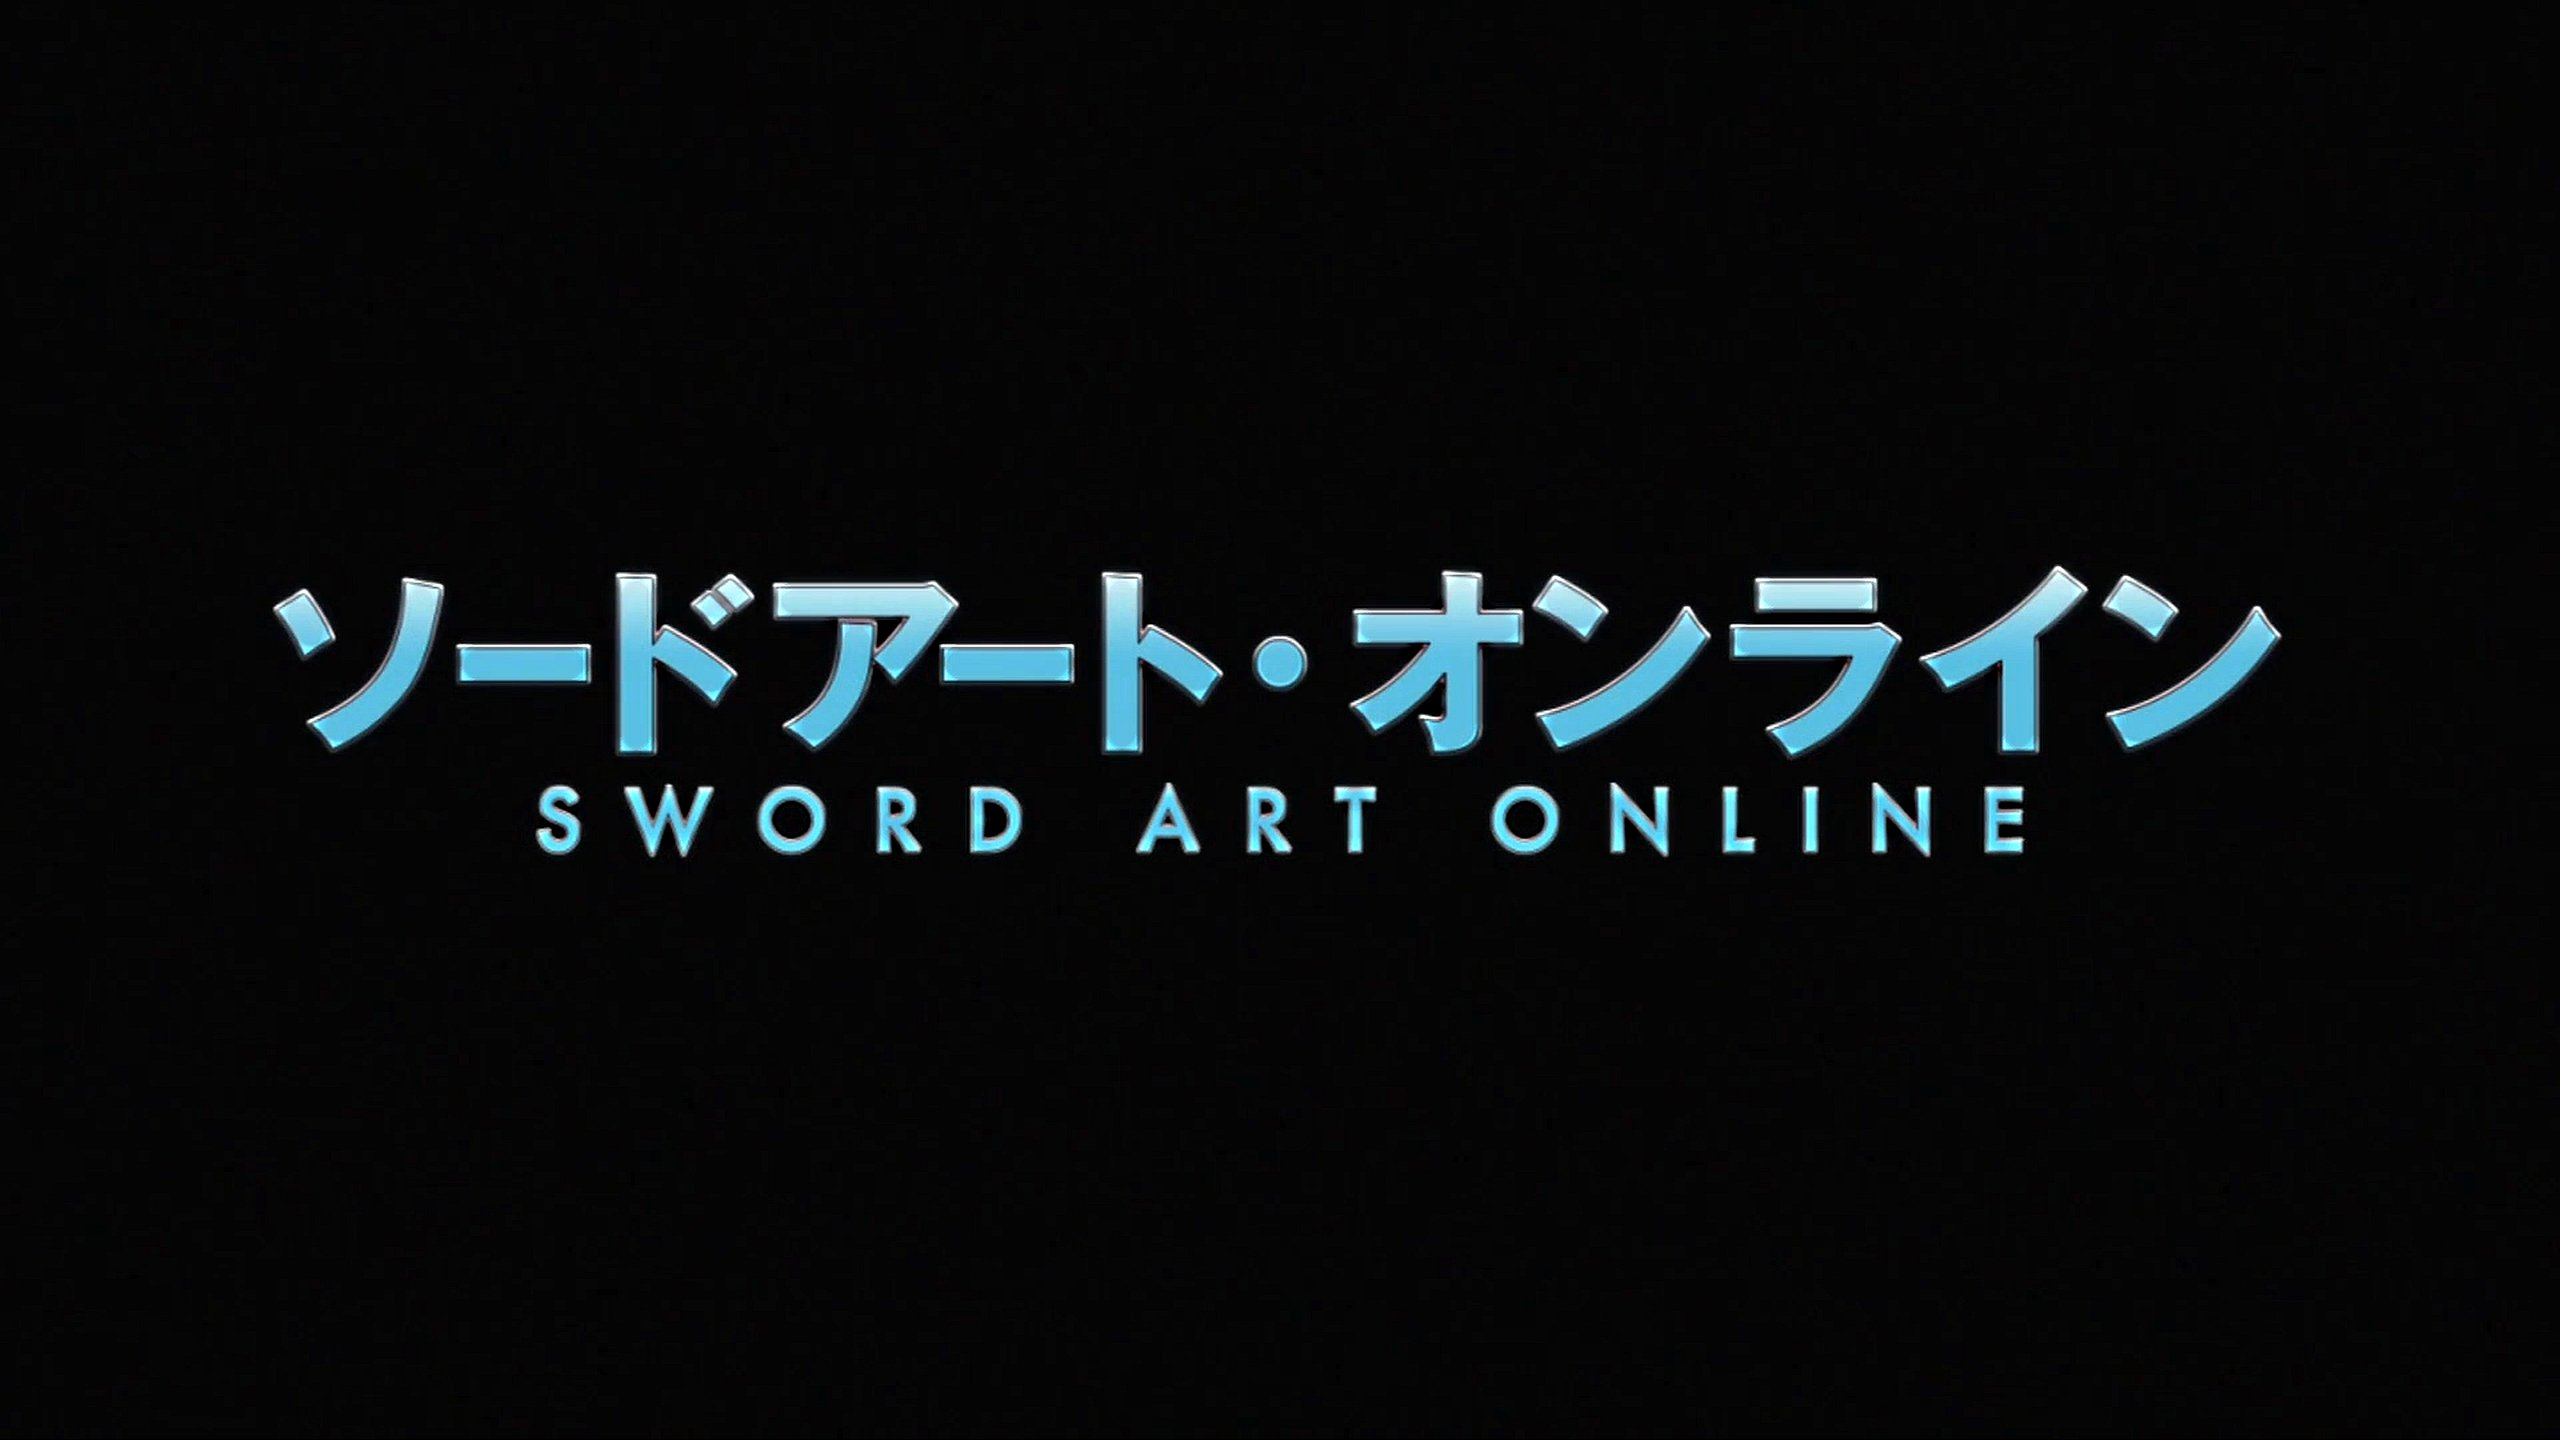 High resolution Sword Art Online (SAO) hd 2560x1440 background ID:180707 for desktop